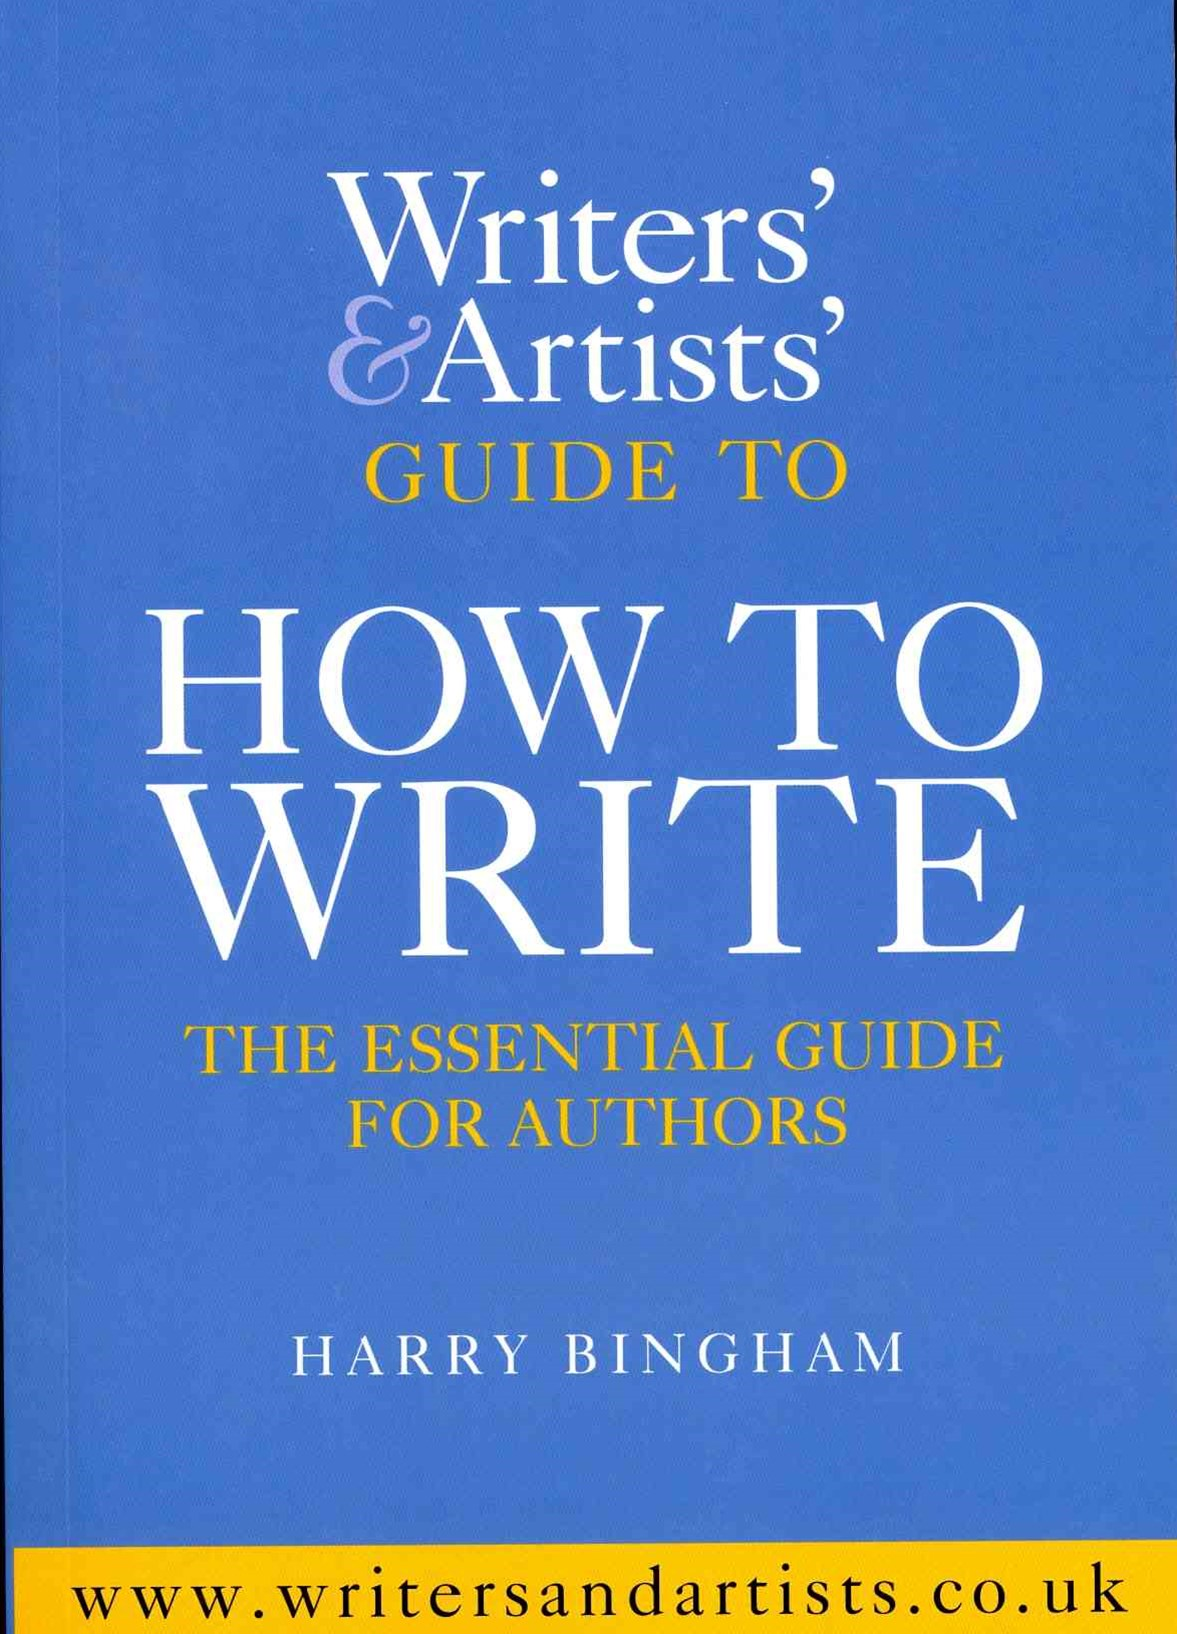 Writers and Artists Guide to How to Write